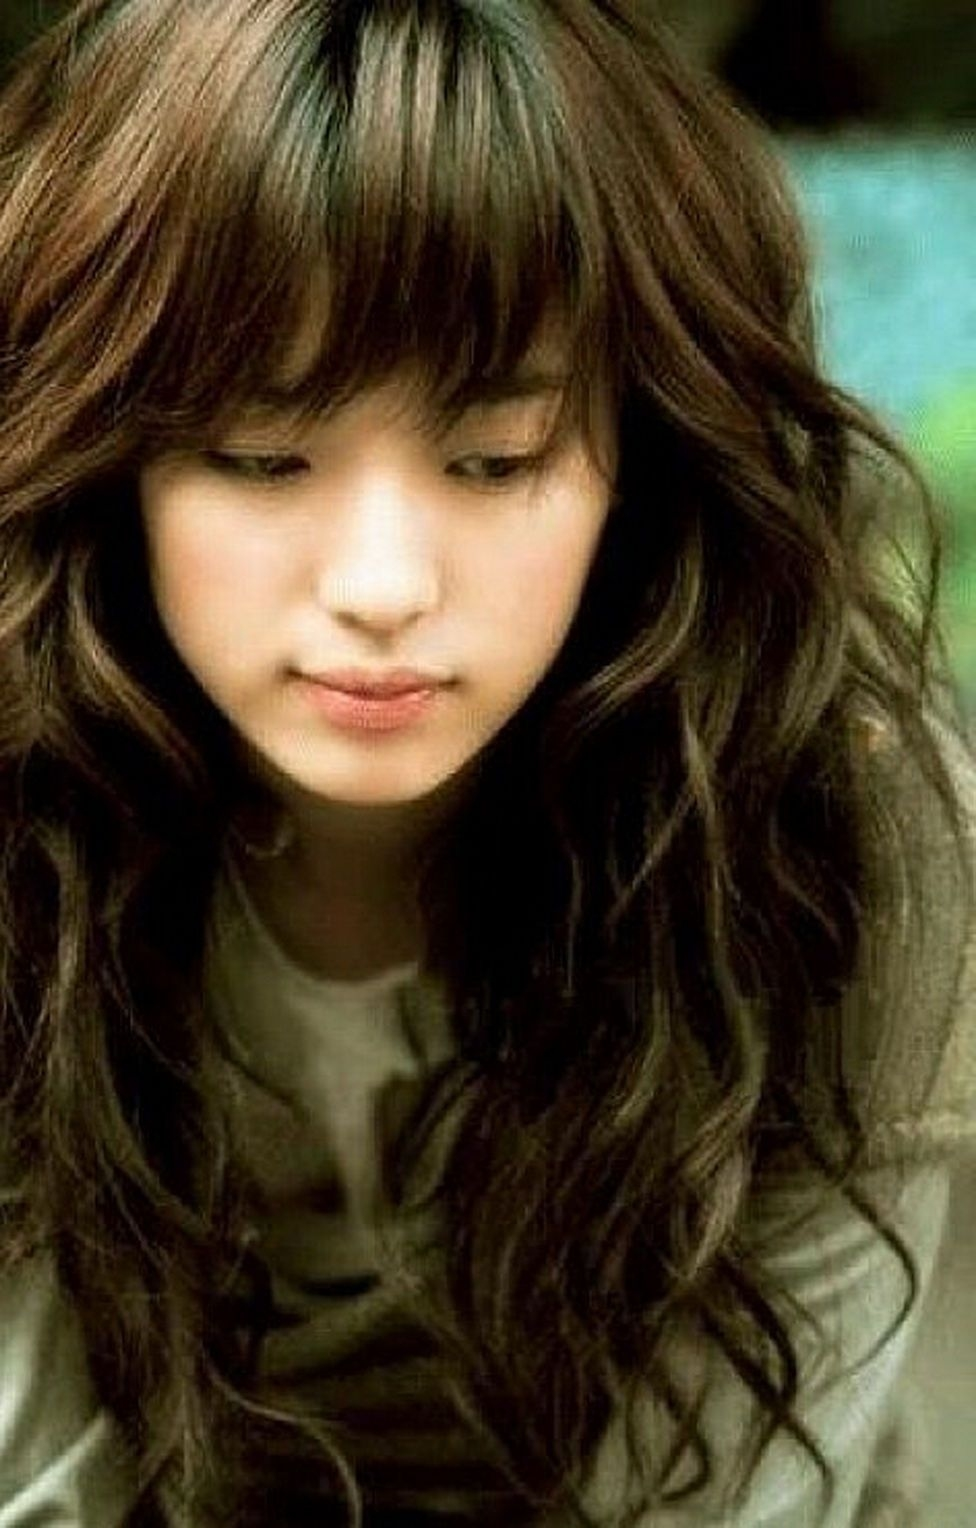 Cute Asian Long Haircut Haircut Hairstyles With Bangs For Wavy Hair with regard to The most ideal Cute Asian Hairstyles With Bangs